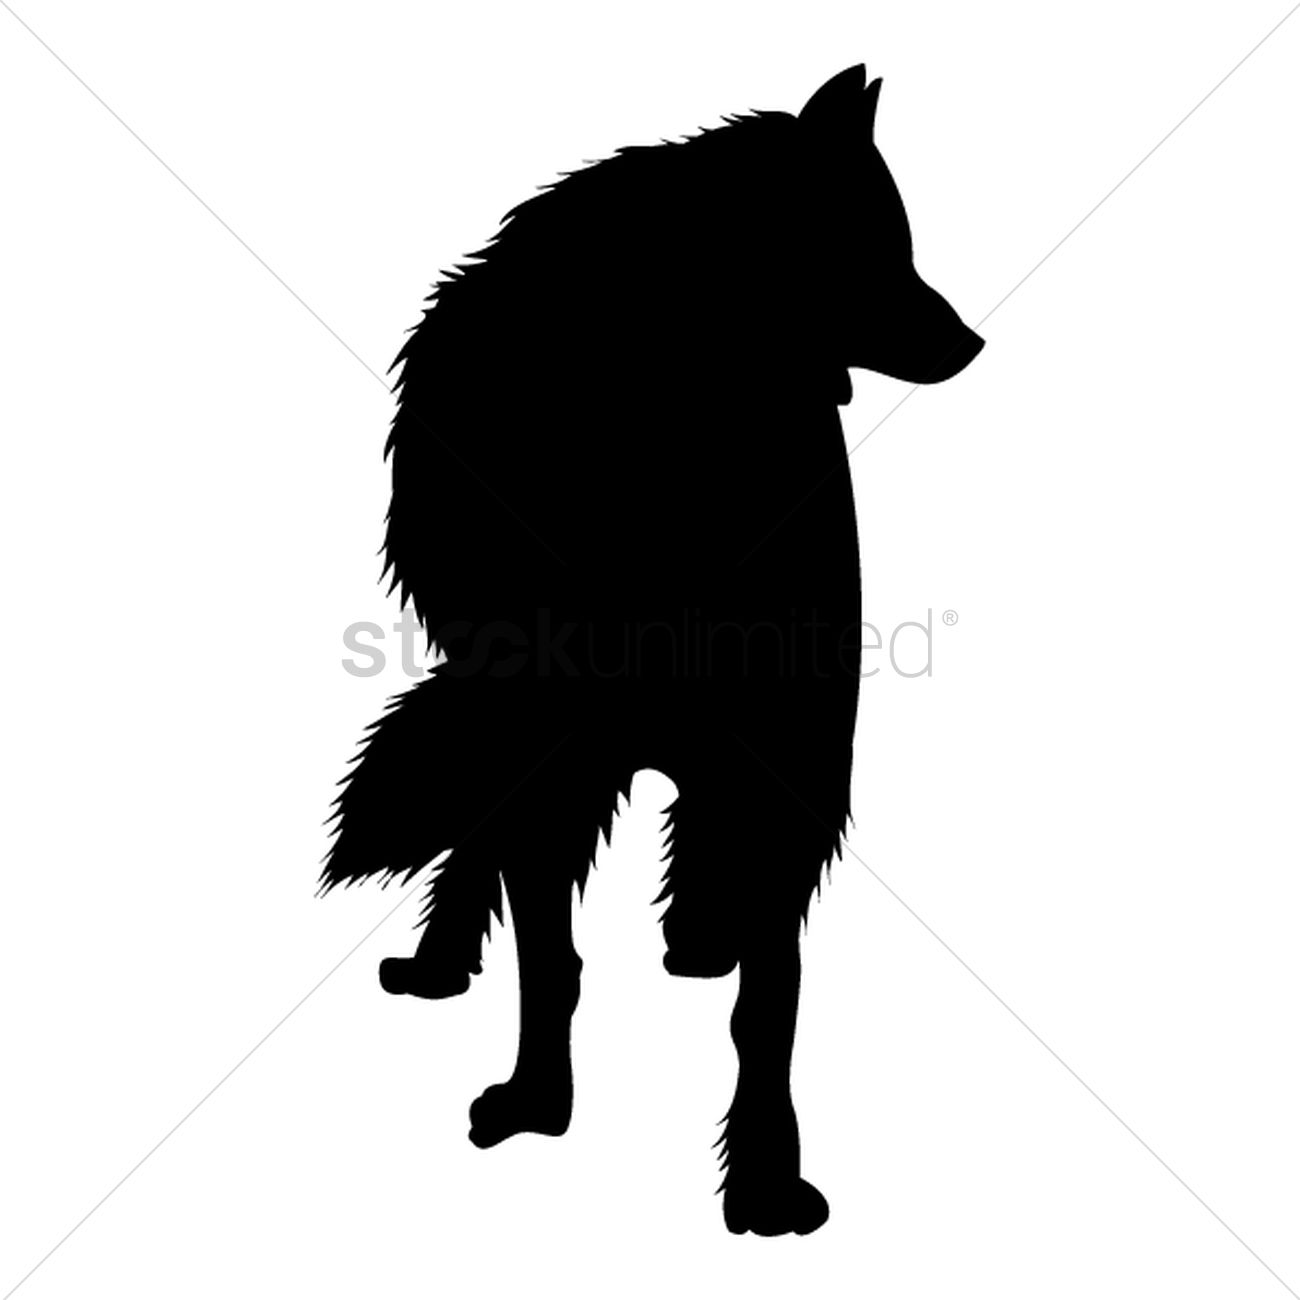 Silhouette of wolf Vector Image - 1501690 | StockUnlimited